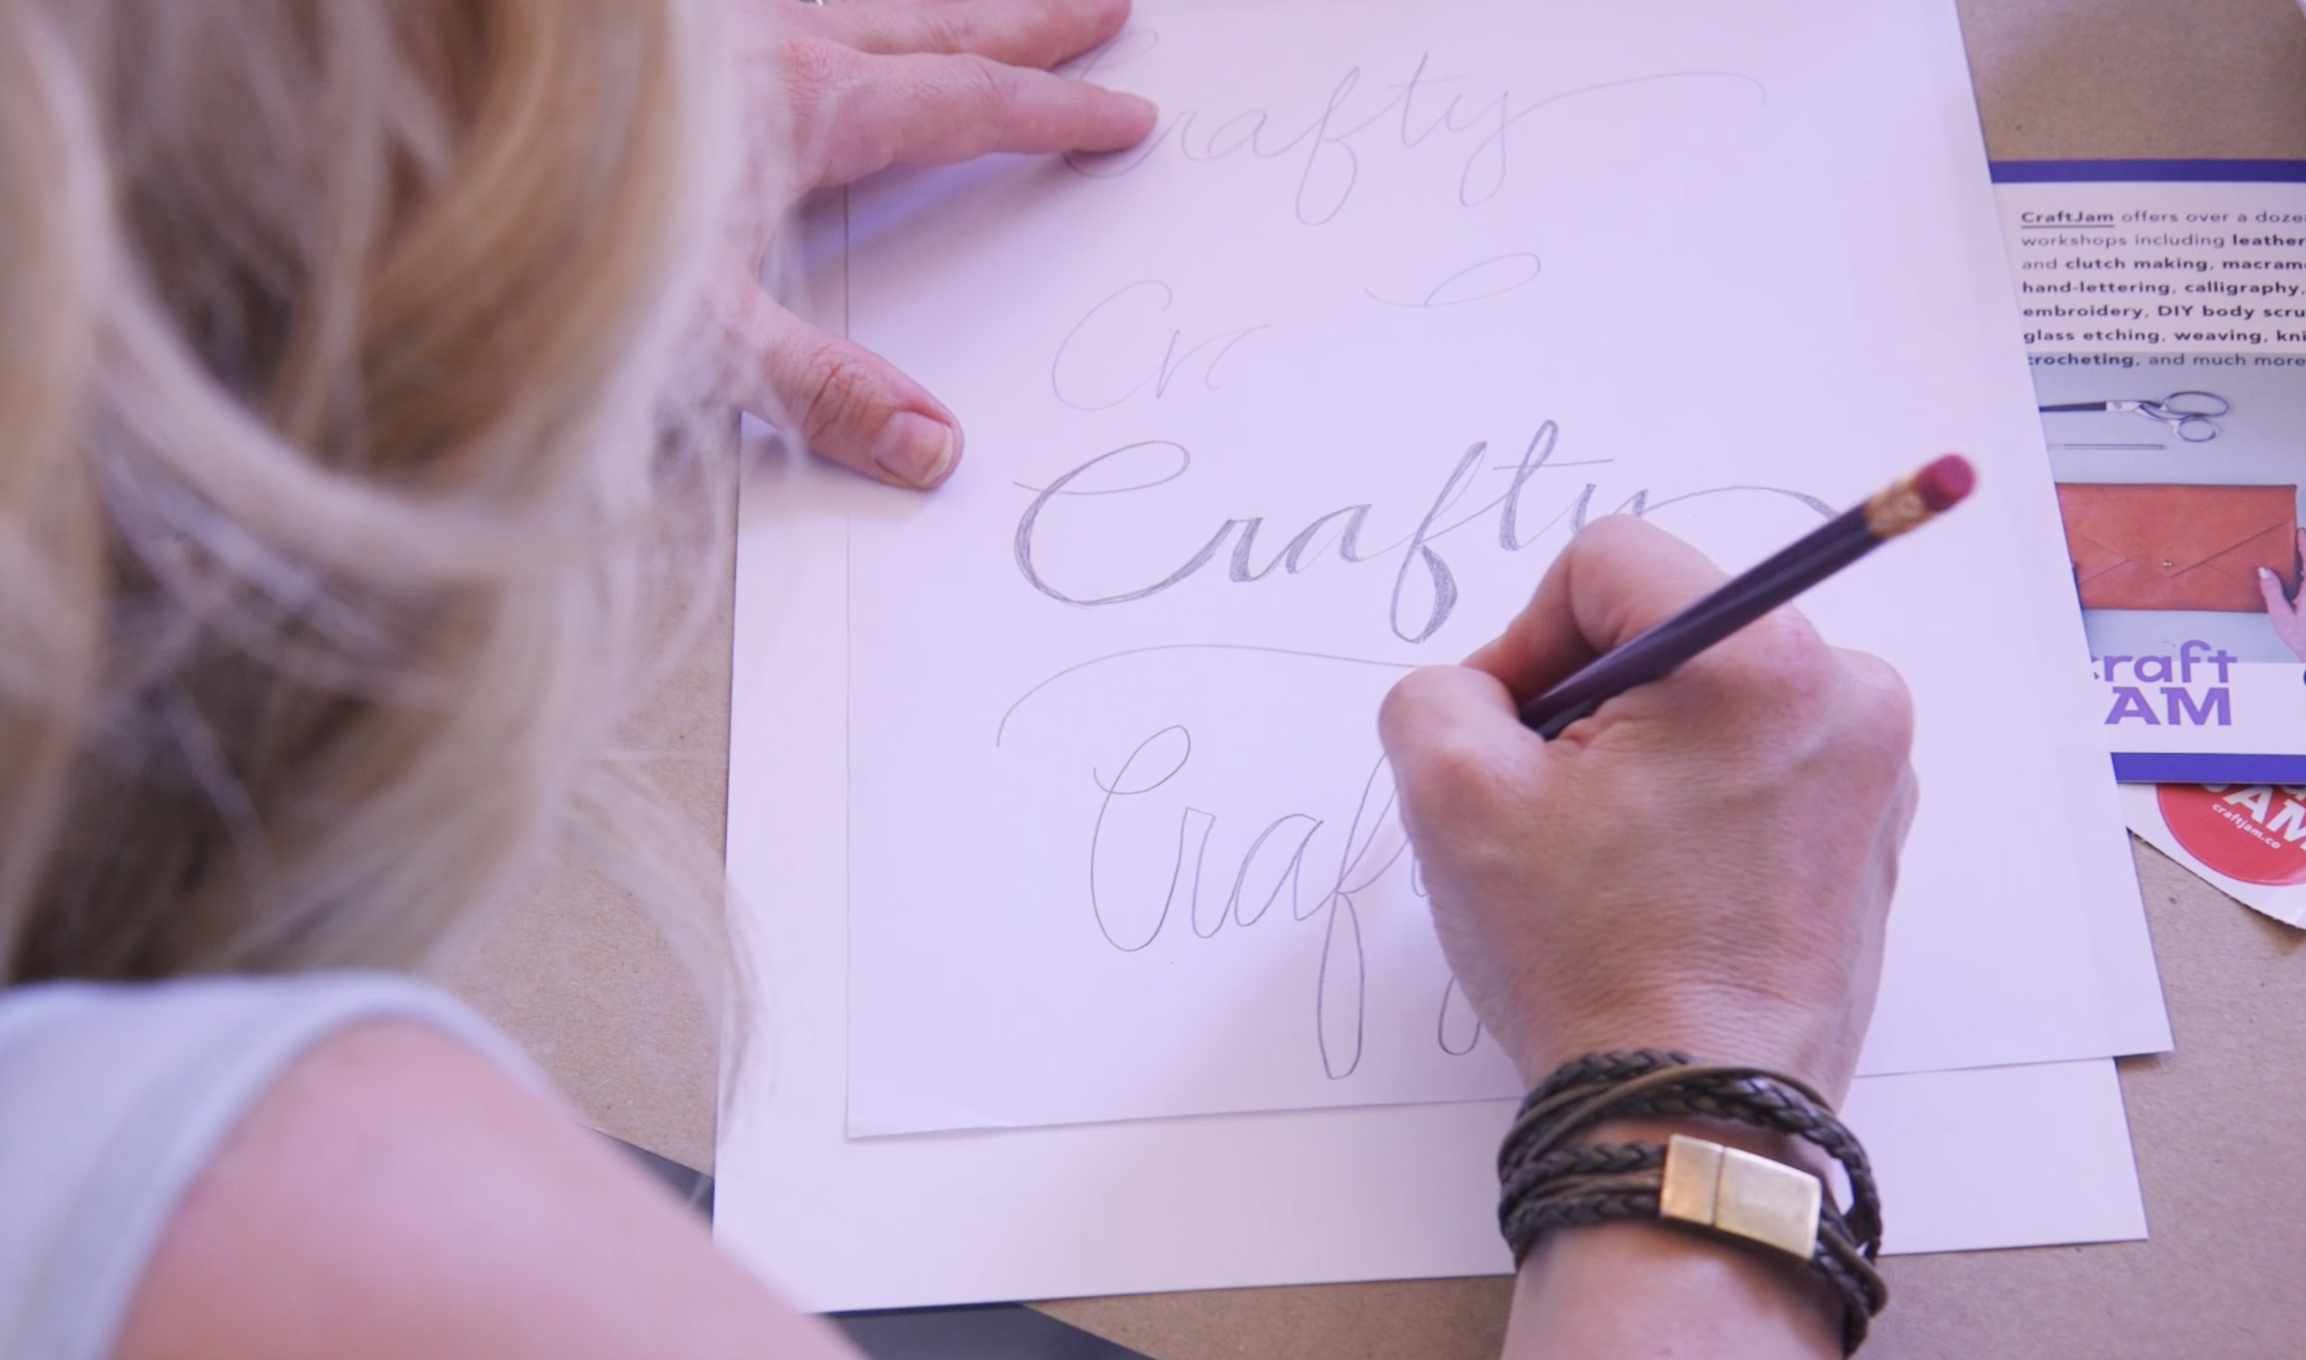 A Sharpie team participant practicing her calligraphy skills.